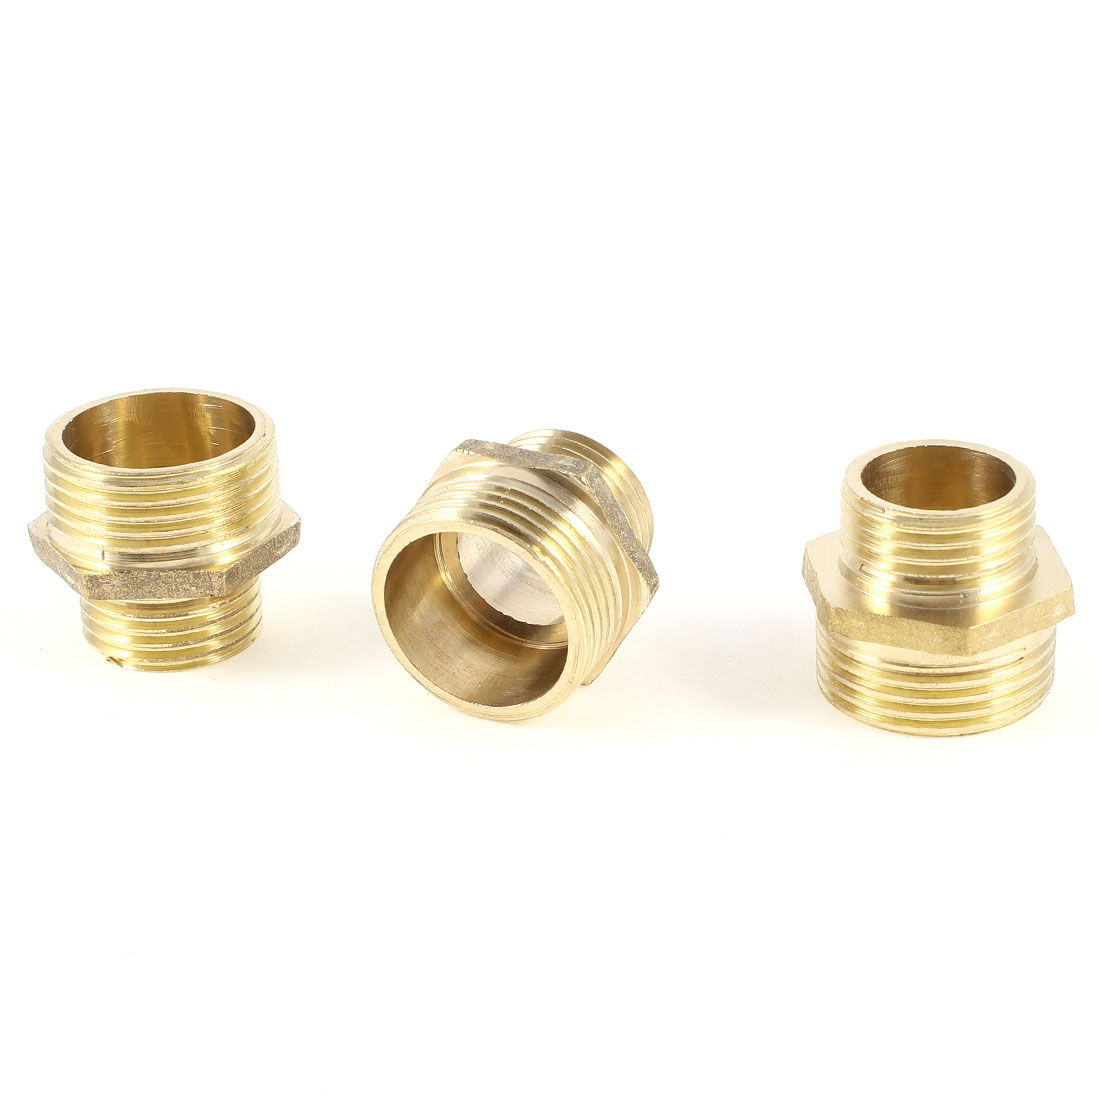 "Male to Male Thread 1/2""PT x 3/4""PT Hex Nipple Reducer Quick Couplings 3PCS"